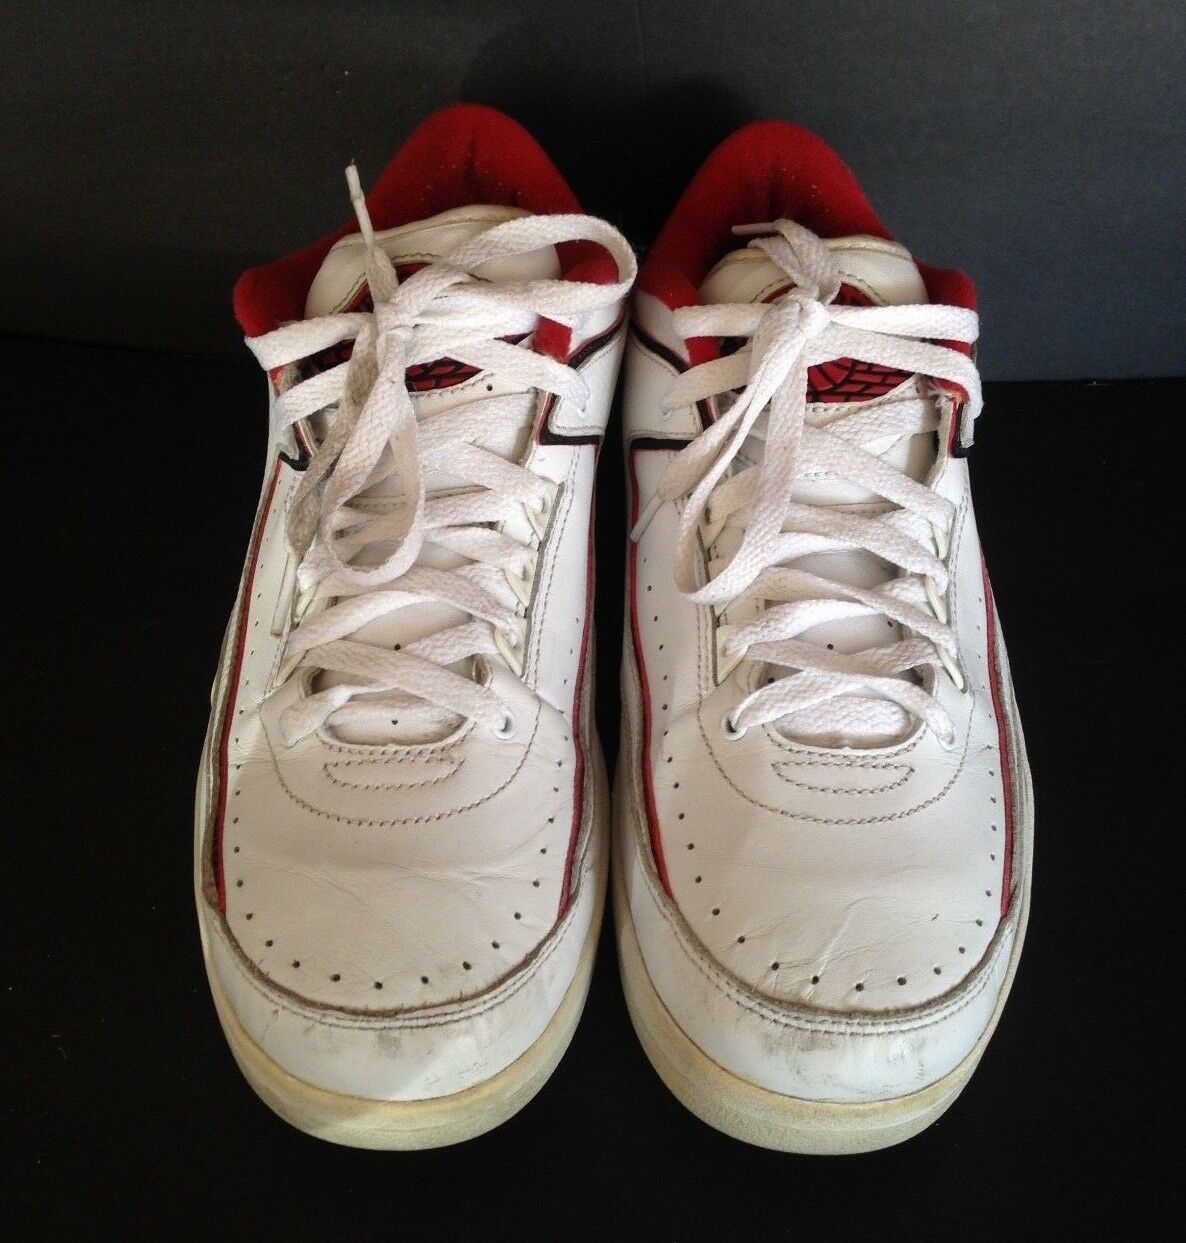 NIKE AIR JORDAN 2 RETRO OG LOW SIZE 9.5 WHITE AND RED PRE-OWNED